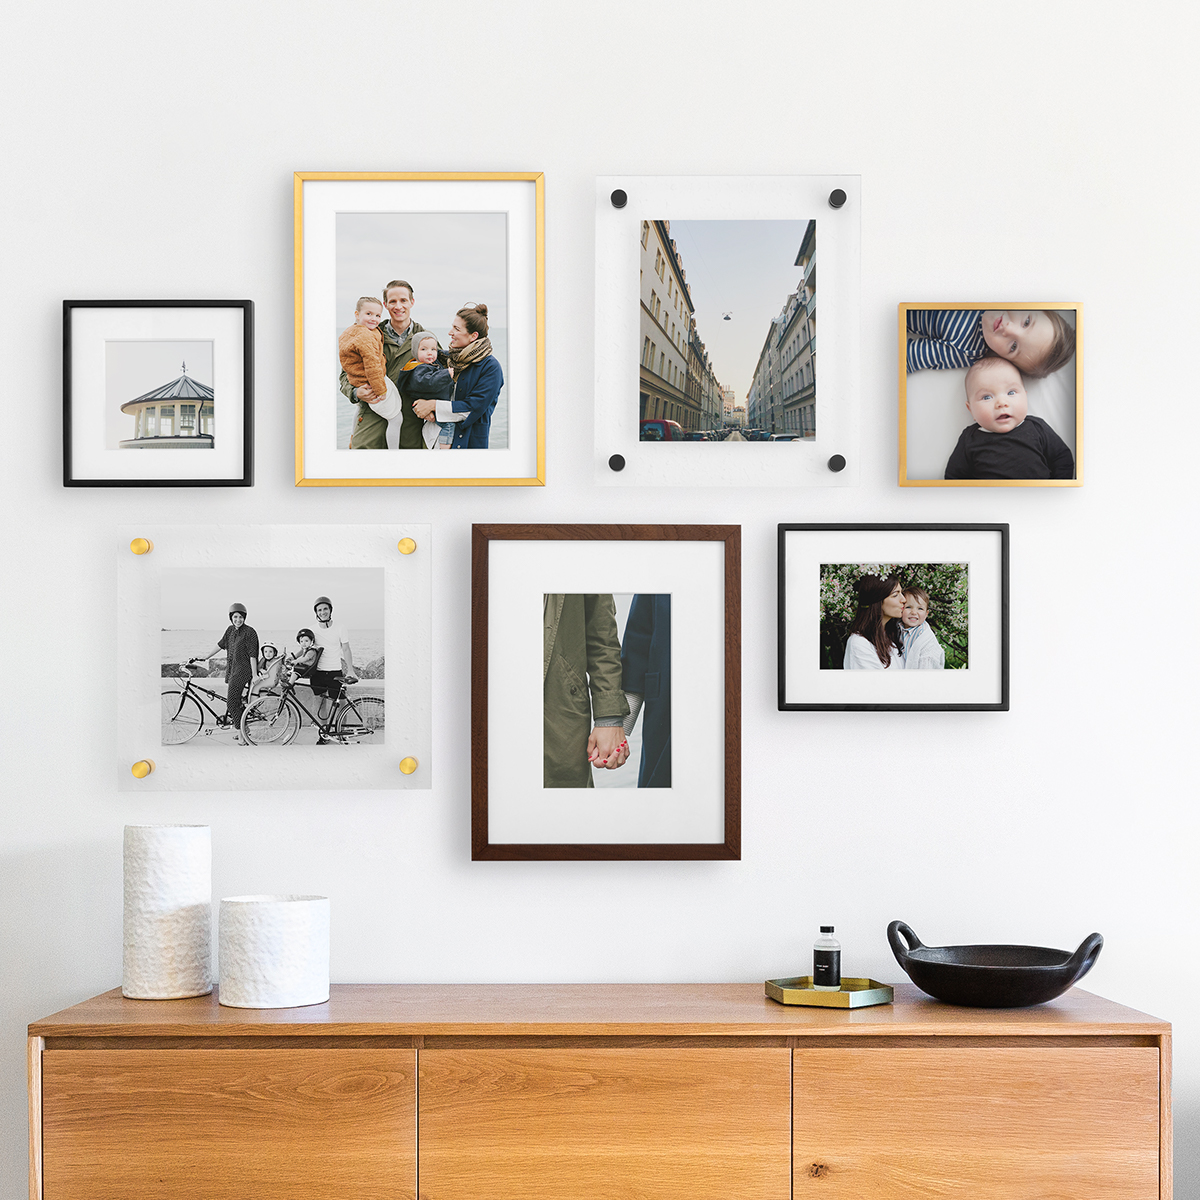 Gallery wall that mixes and matches sizes, styles, and finishes